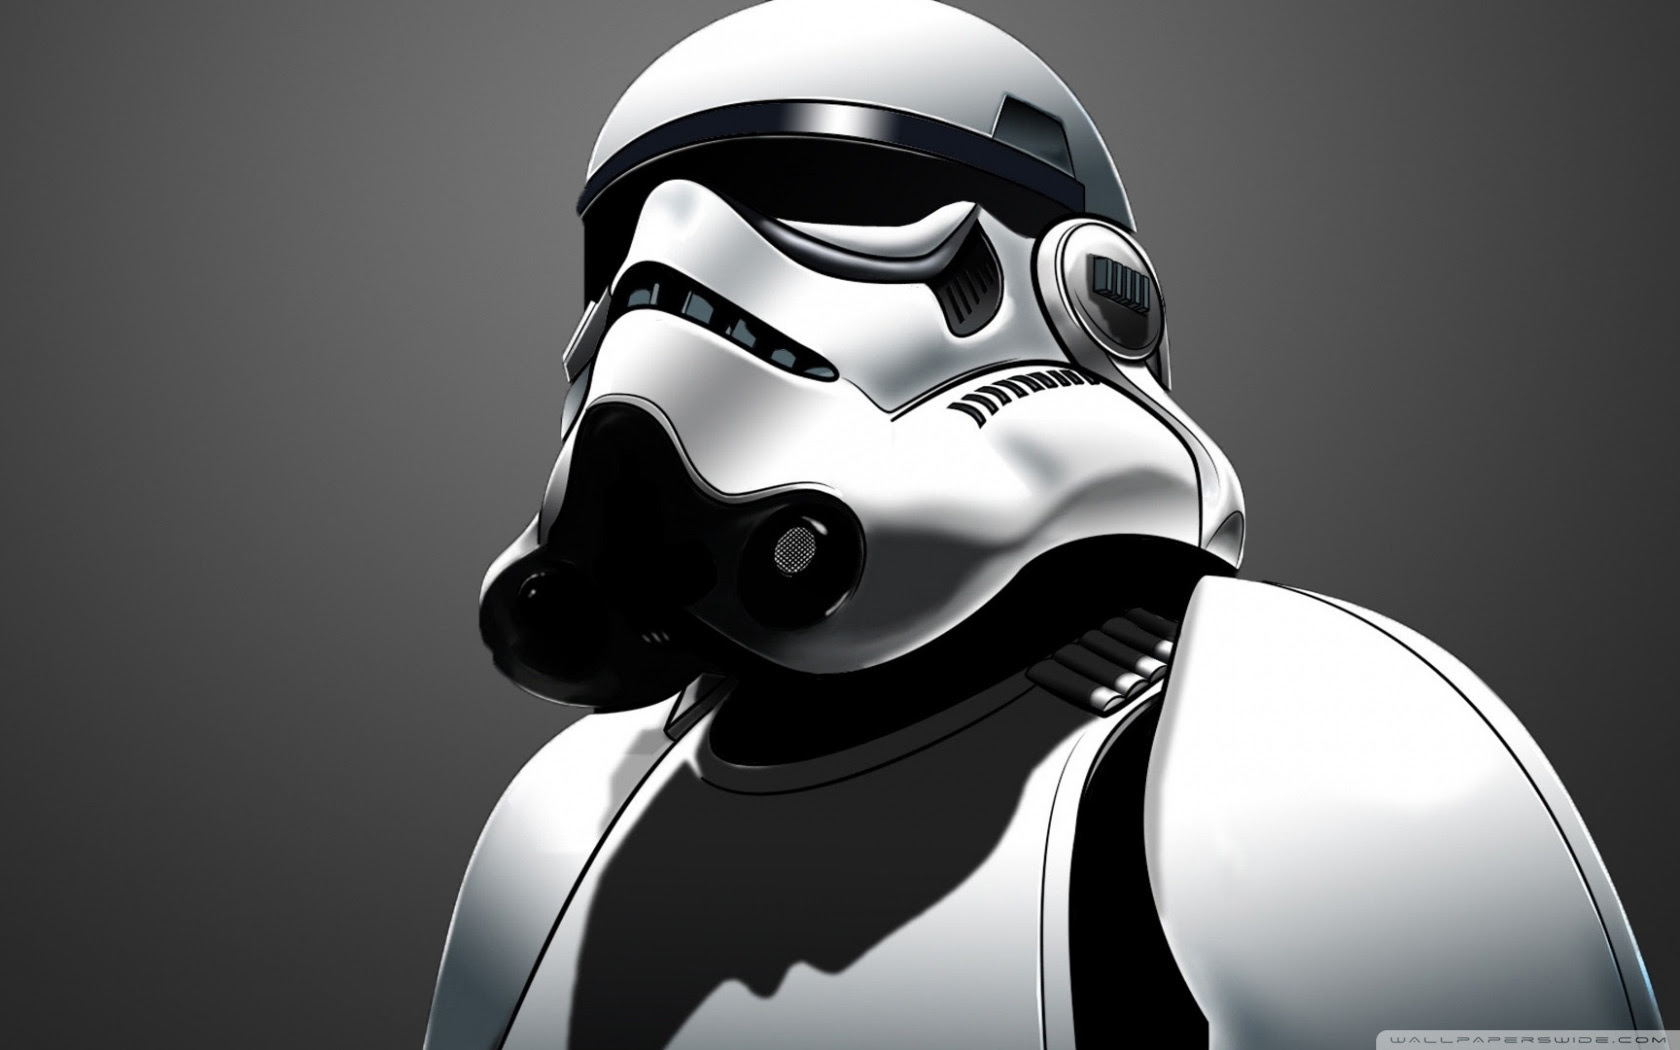 Star Wars Storm Trooper Ultra Hd Desktop Background Wallpaper